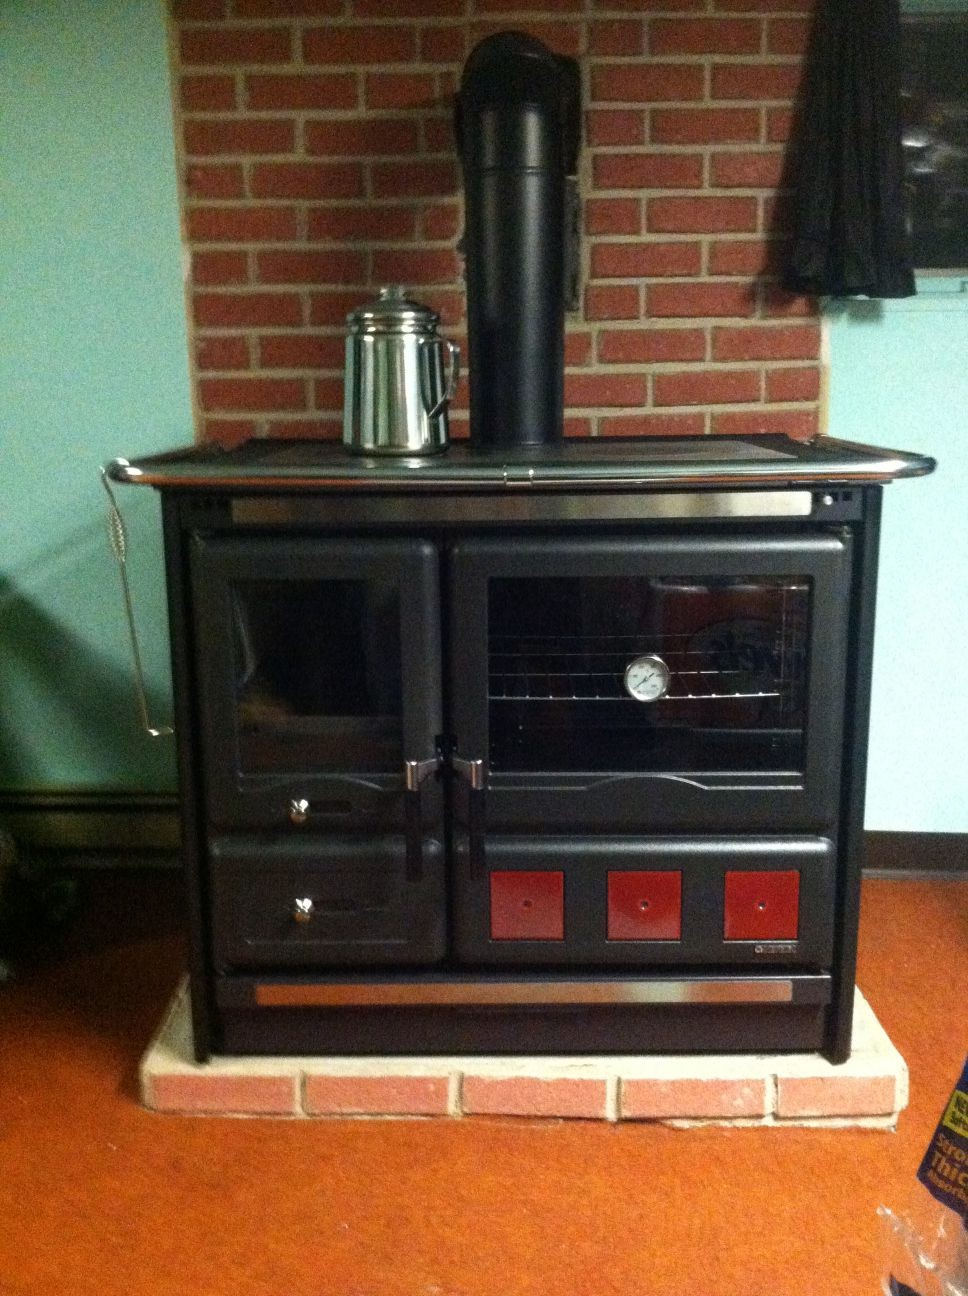 Wood Burning Cook Stove La Nordica Quot Rosa Xxl Quot